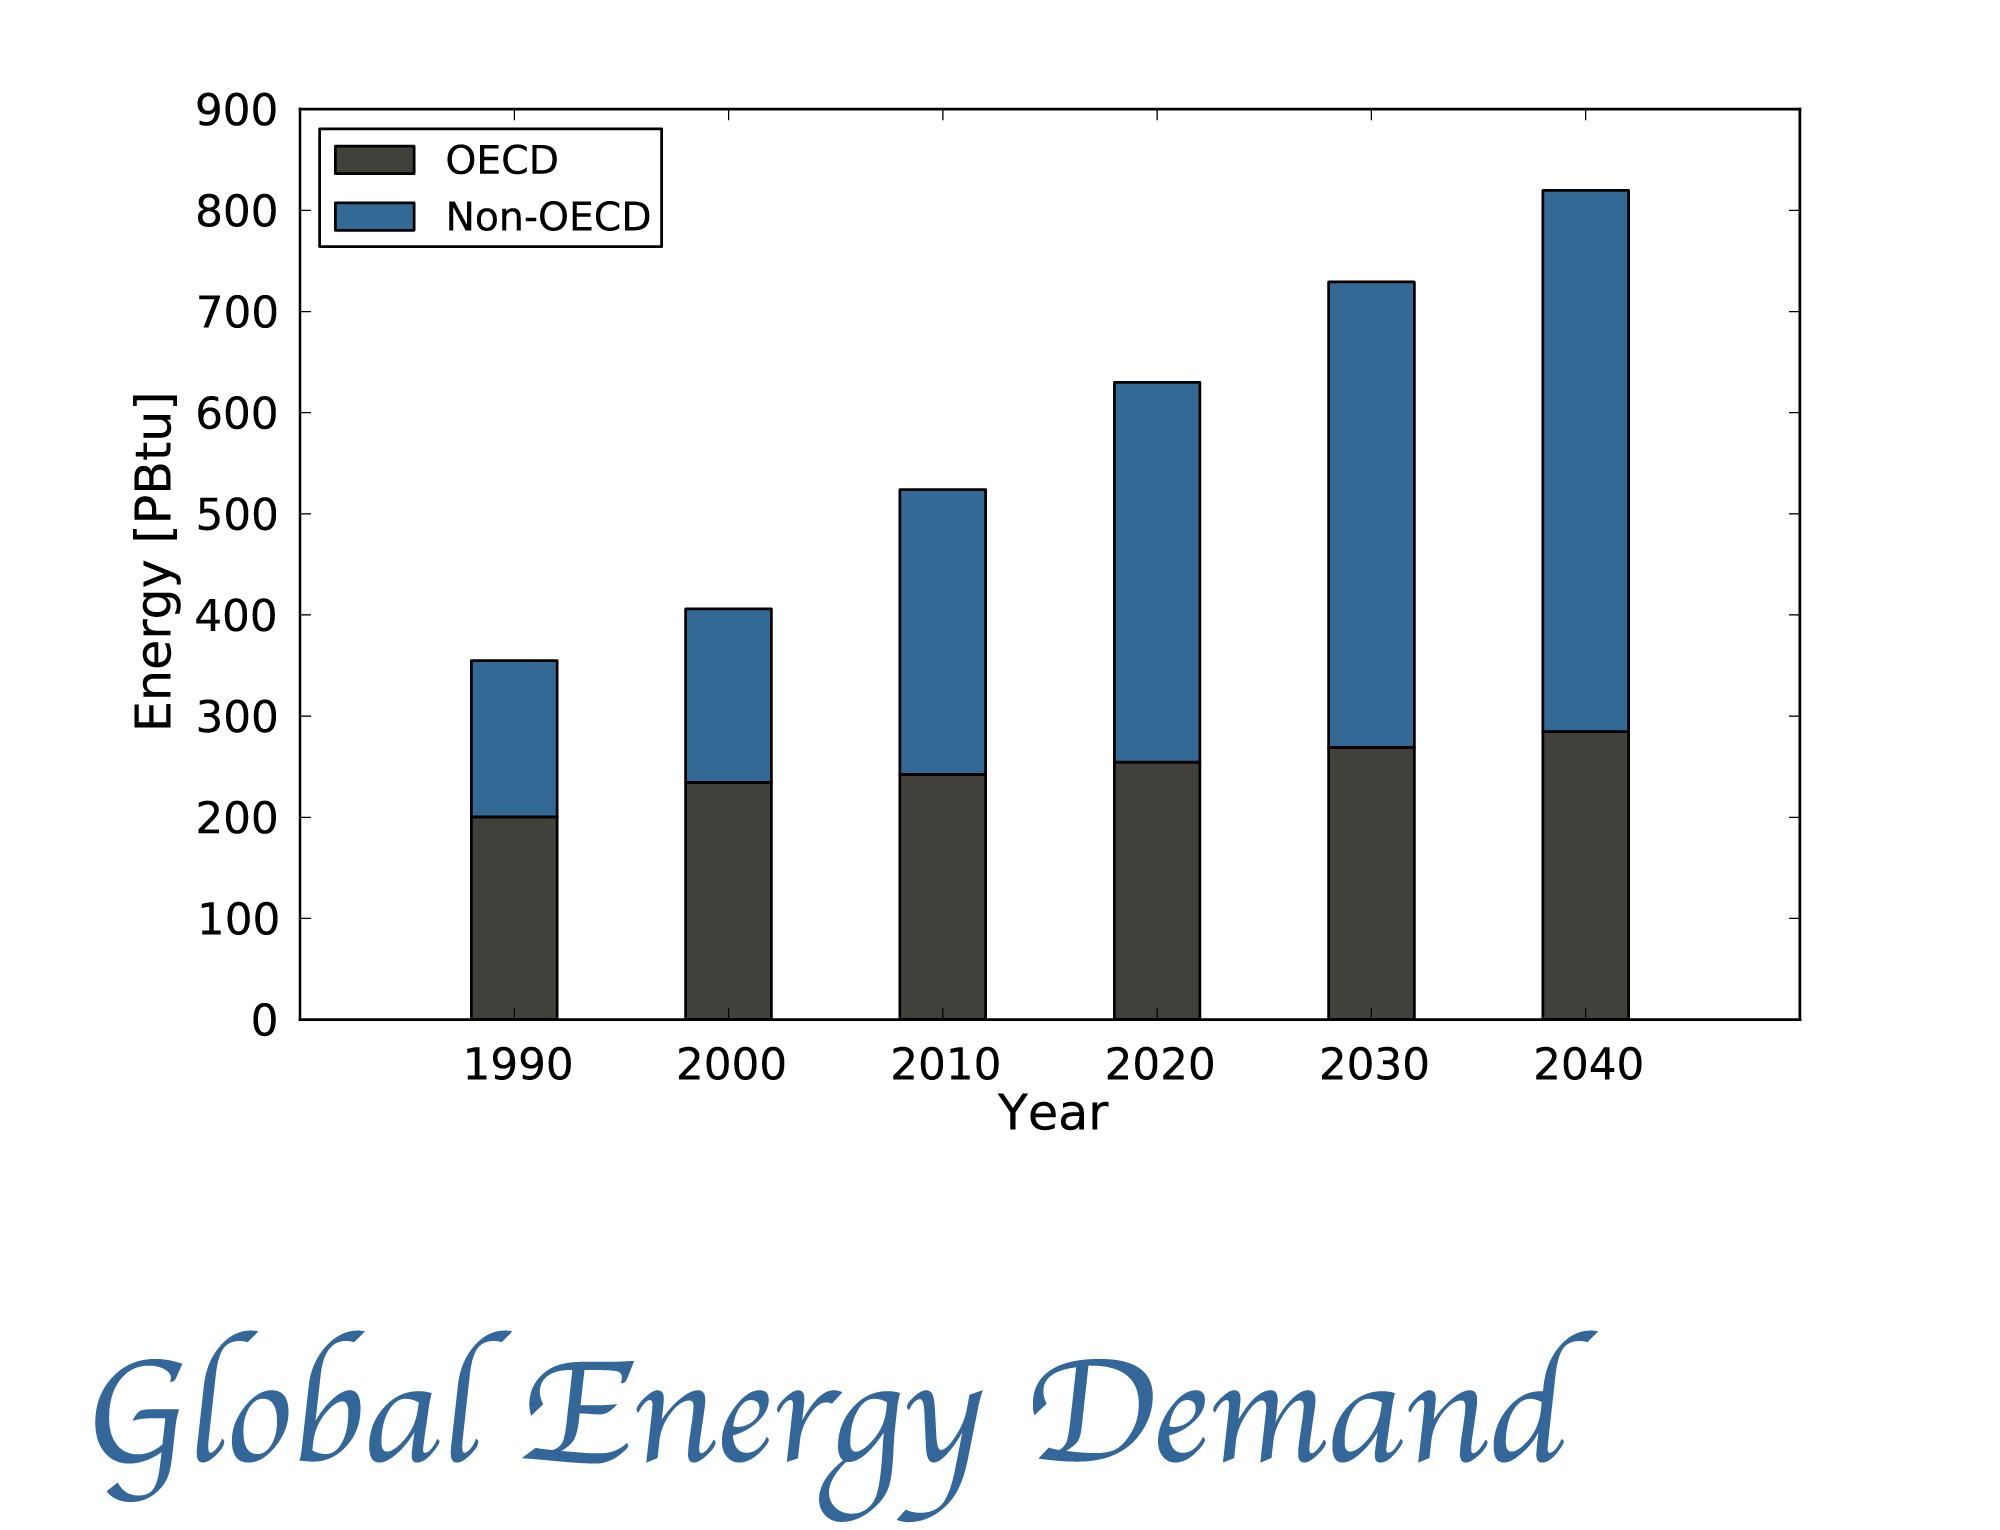 Energy demand